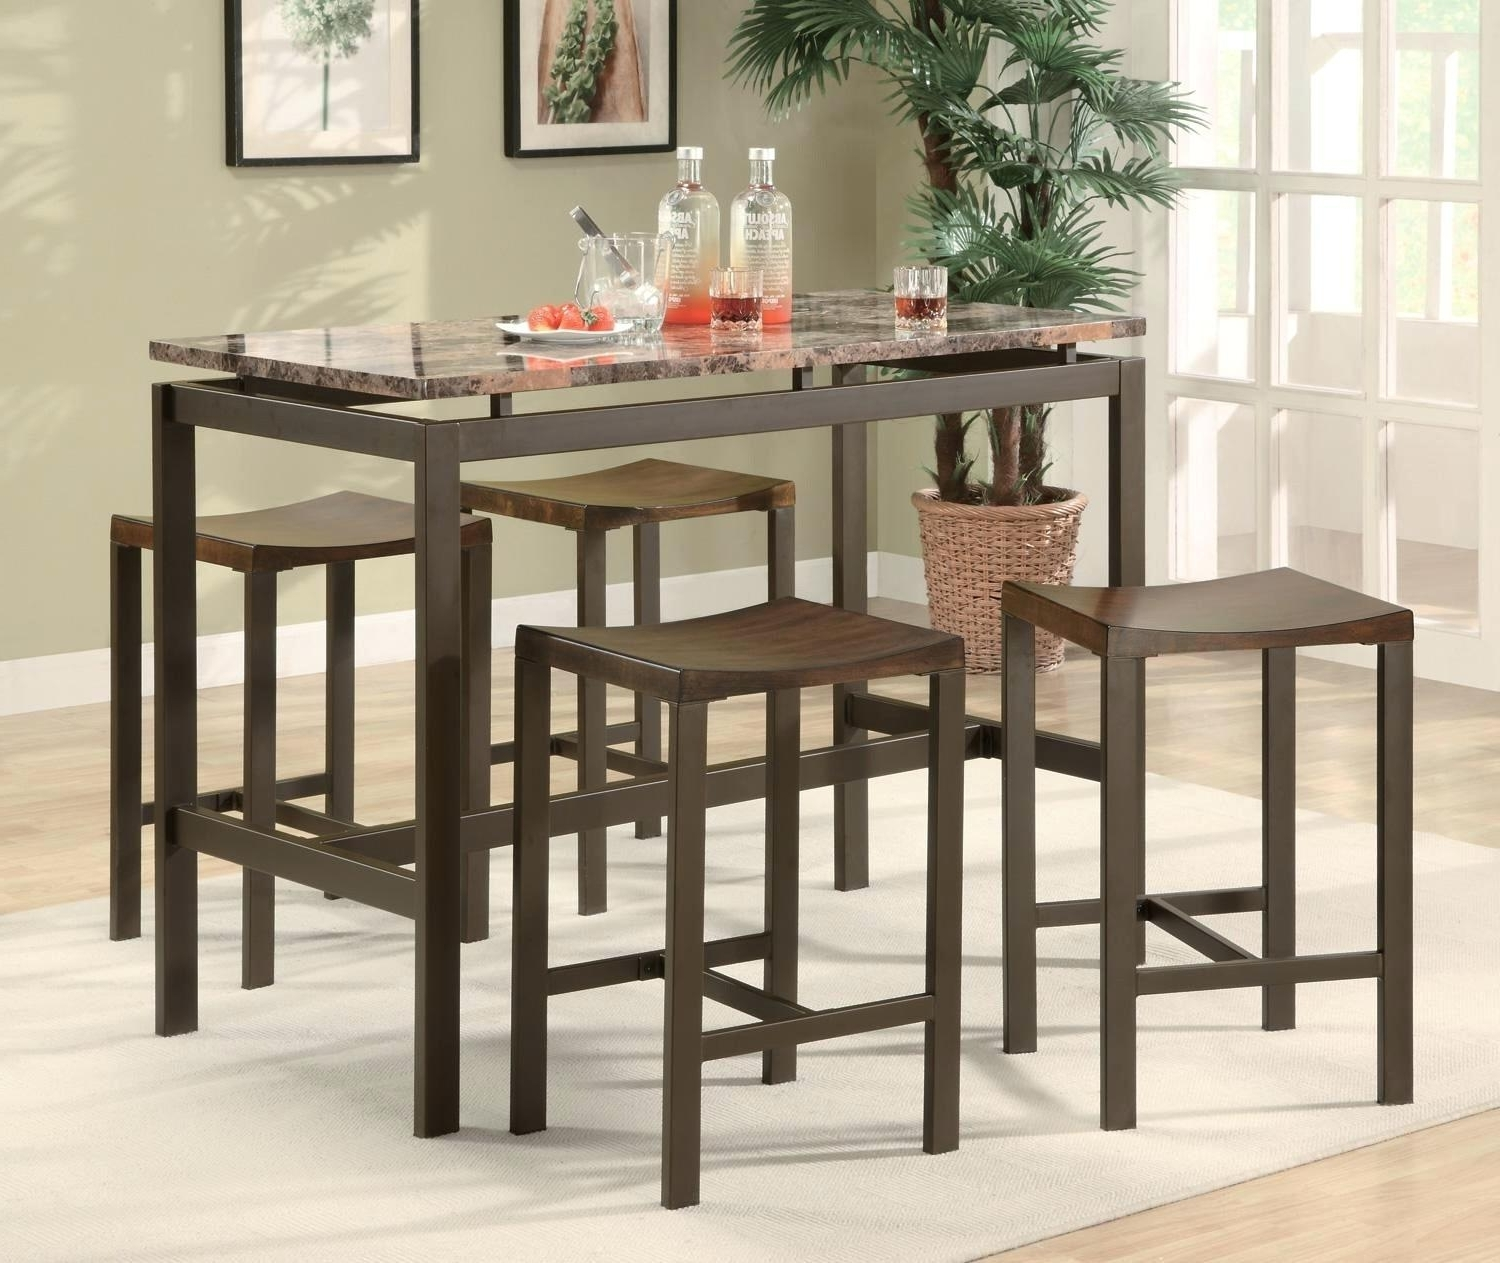 2018 Hyland Counter Height Dining Room Table – Ocane Throughout Hyland 5 Piece Counter Sets With Stools (Gallery 11 of 25)